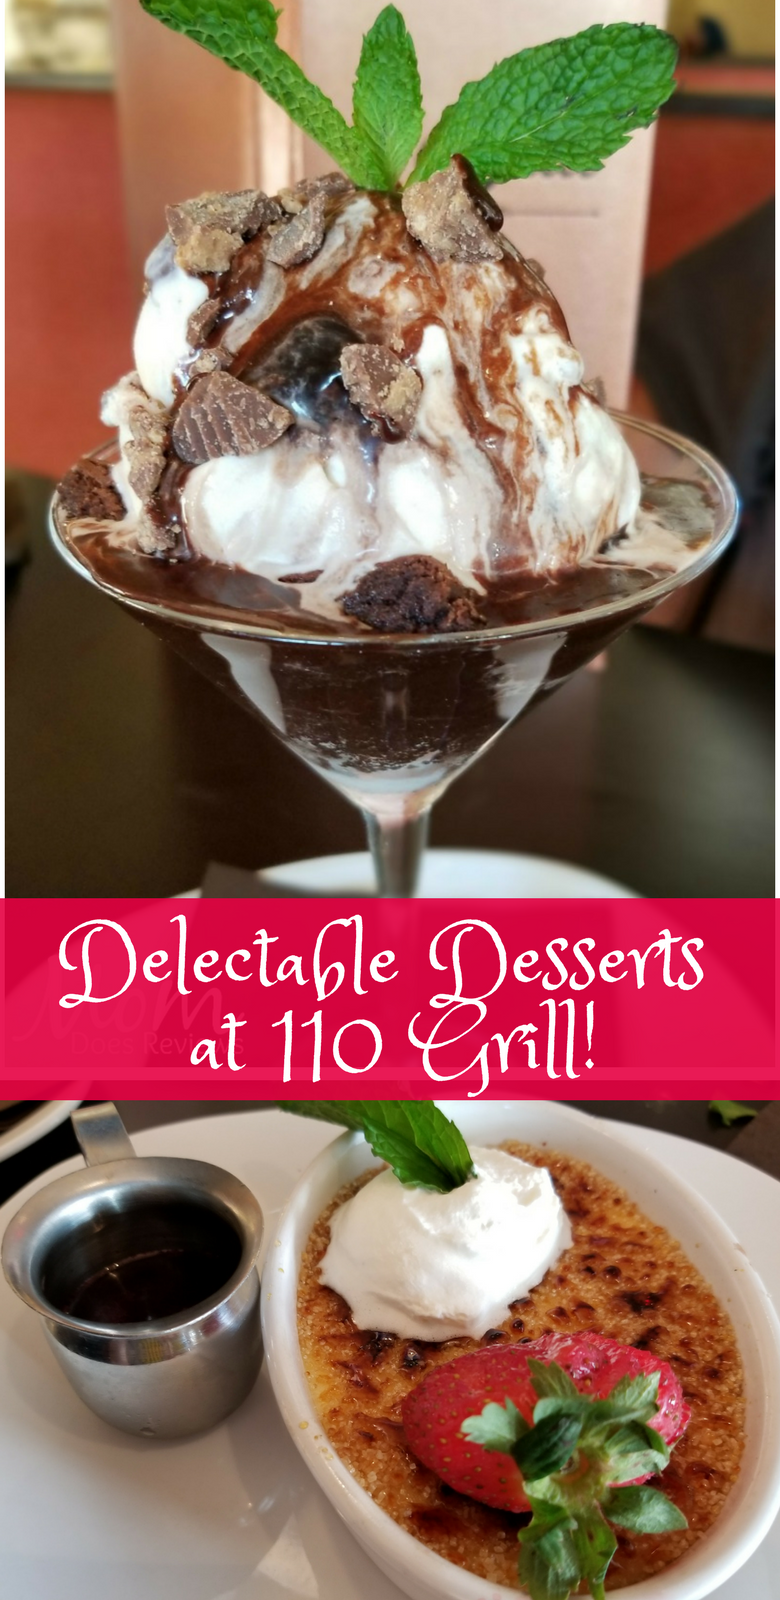 Delectable Desserts at 110 Grill